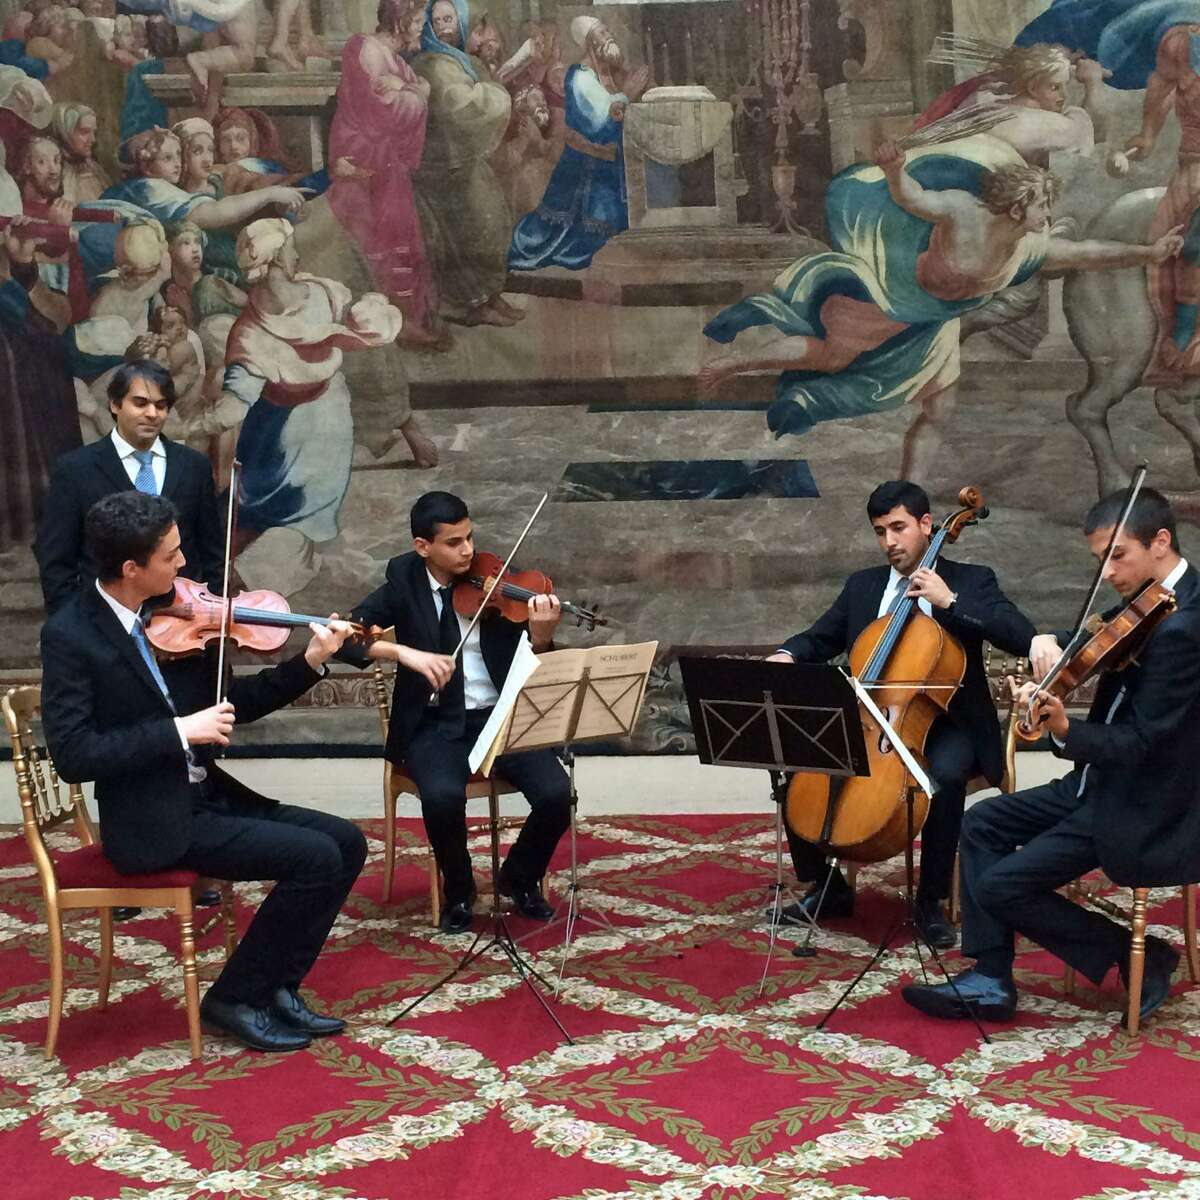 Above, a Polyphony quartet, with Nabeel Abboud-Ashkar in the background, playing at a Climate Change reception dinner at the Élysée Palace. Below, Polyphony string musicians with their instruments.